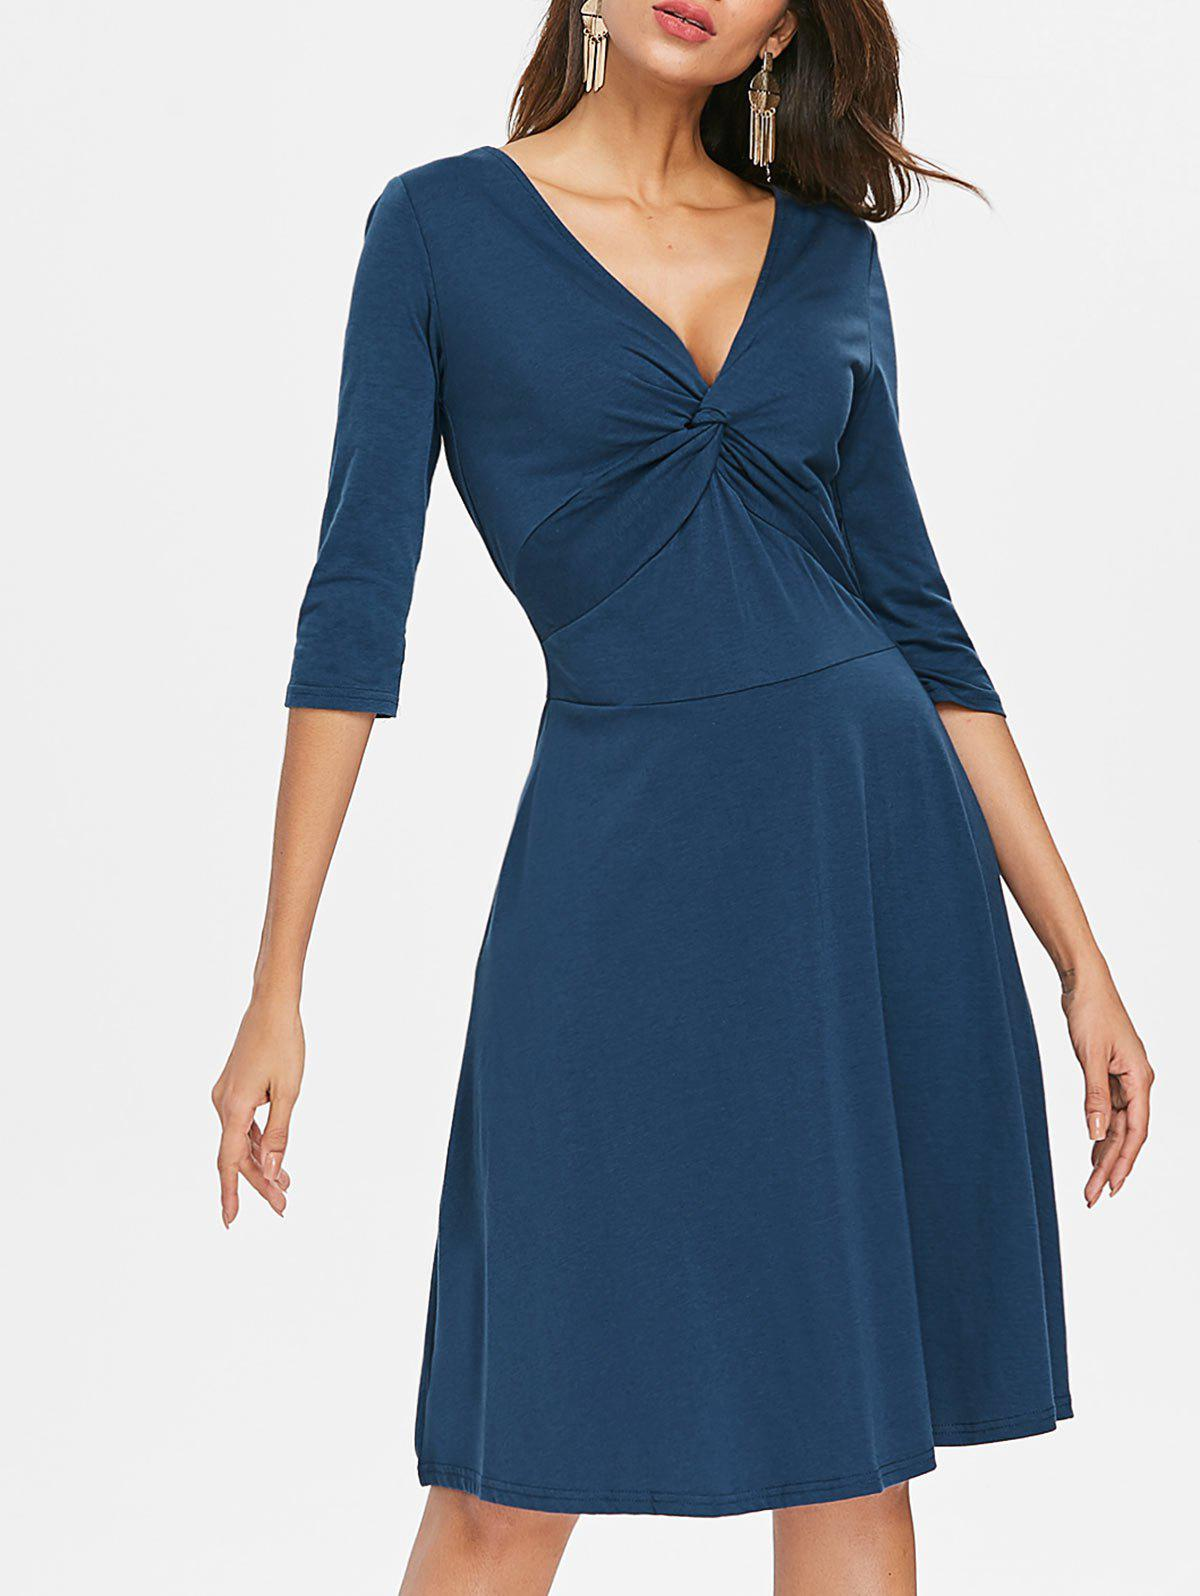 Hot V Neck Knot A Line Dress